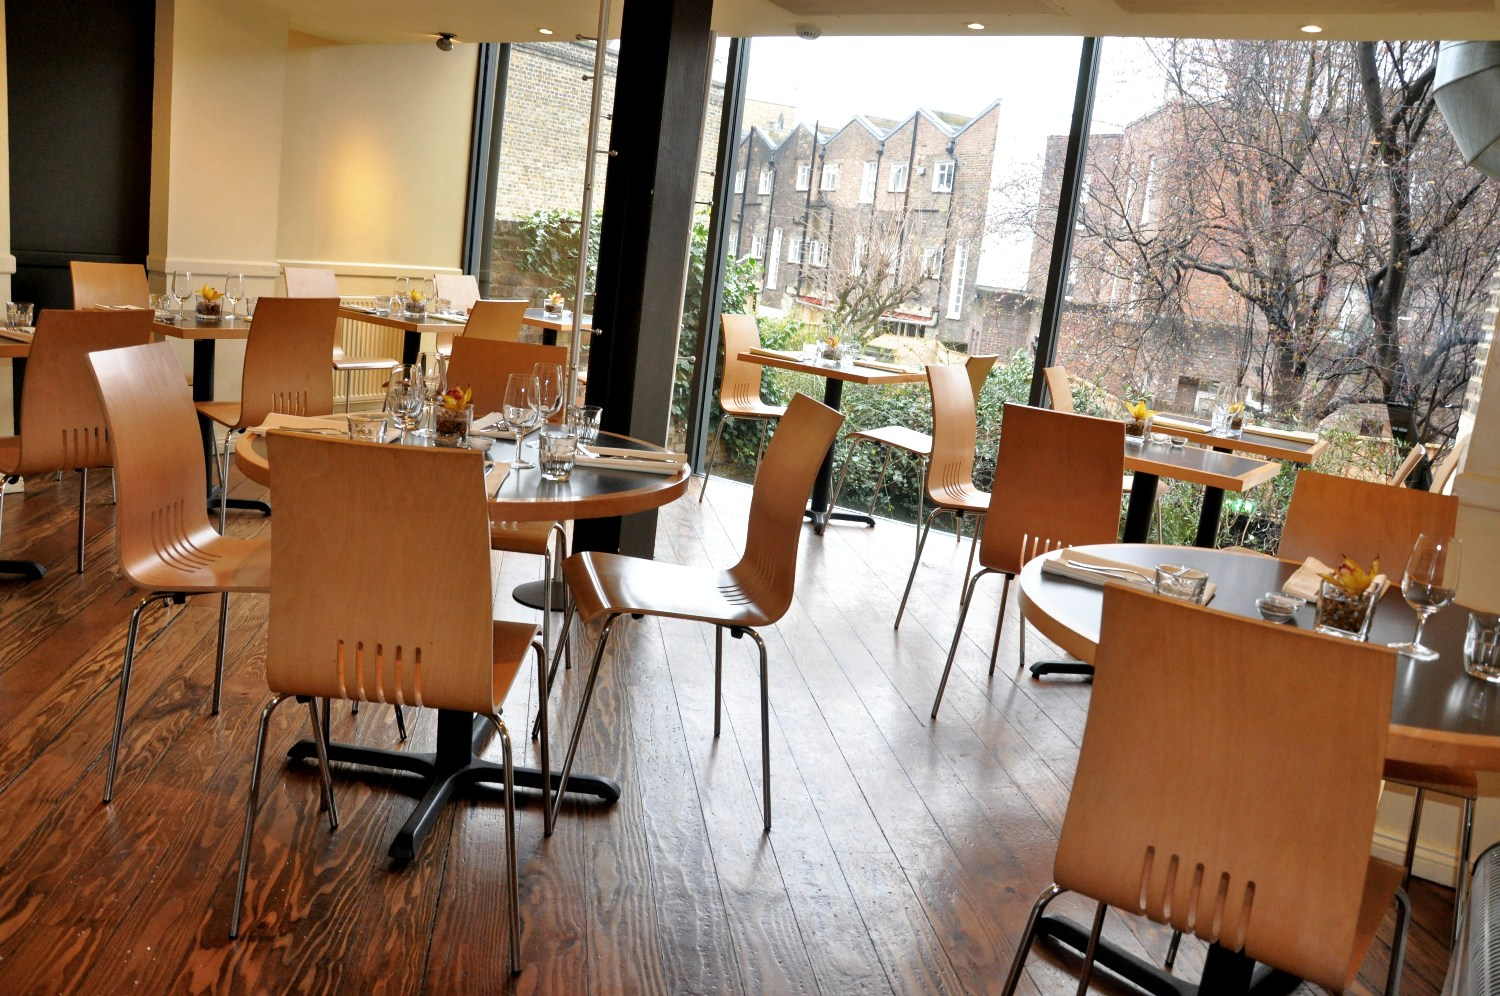 Reserve a table at The Brasserie on St John Street